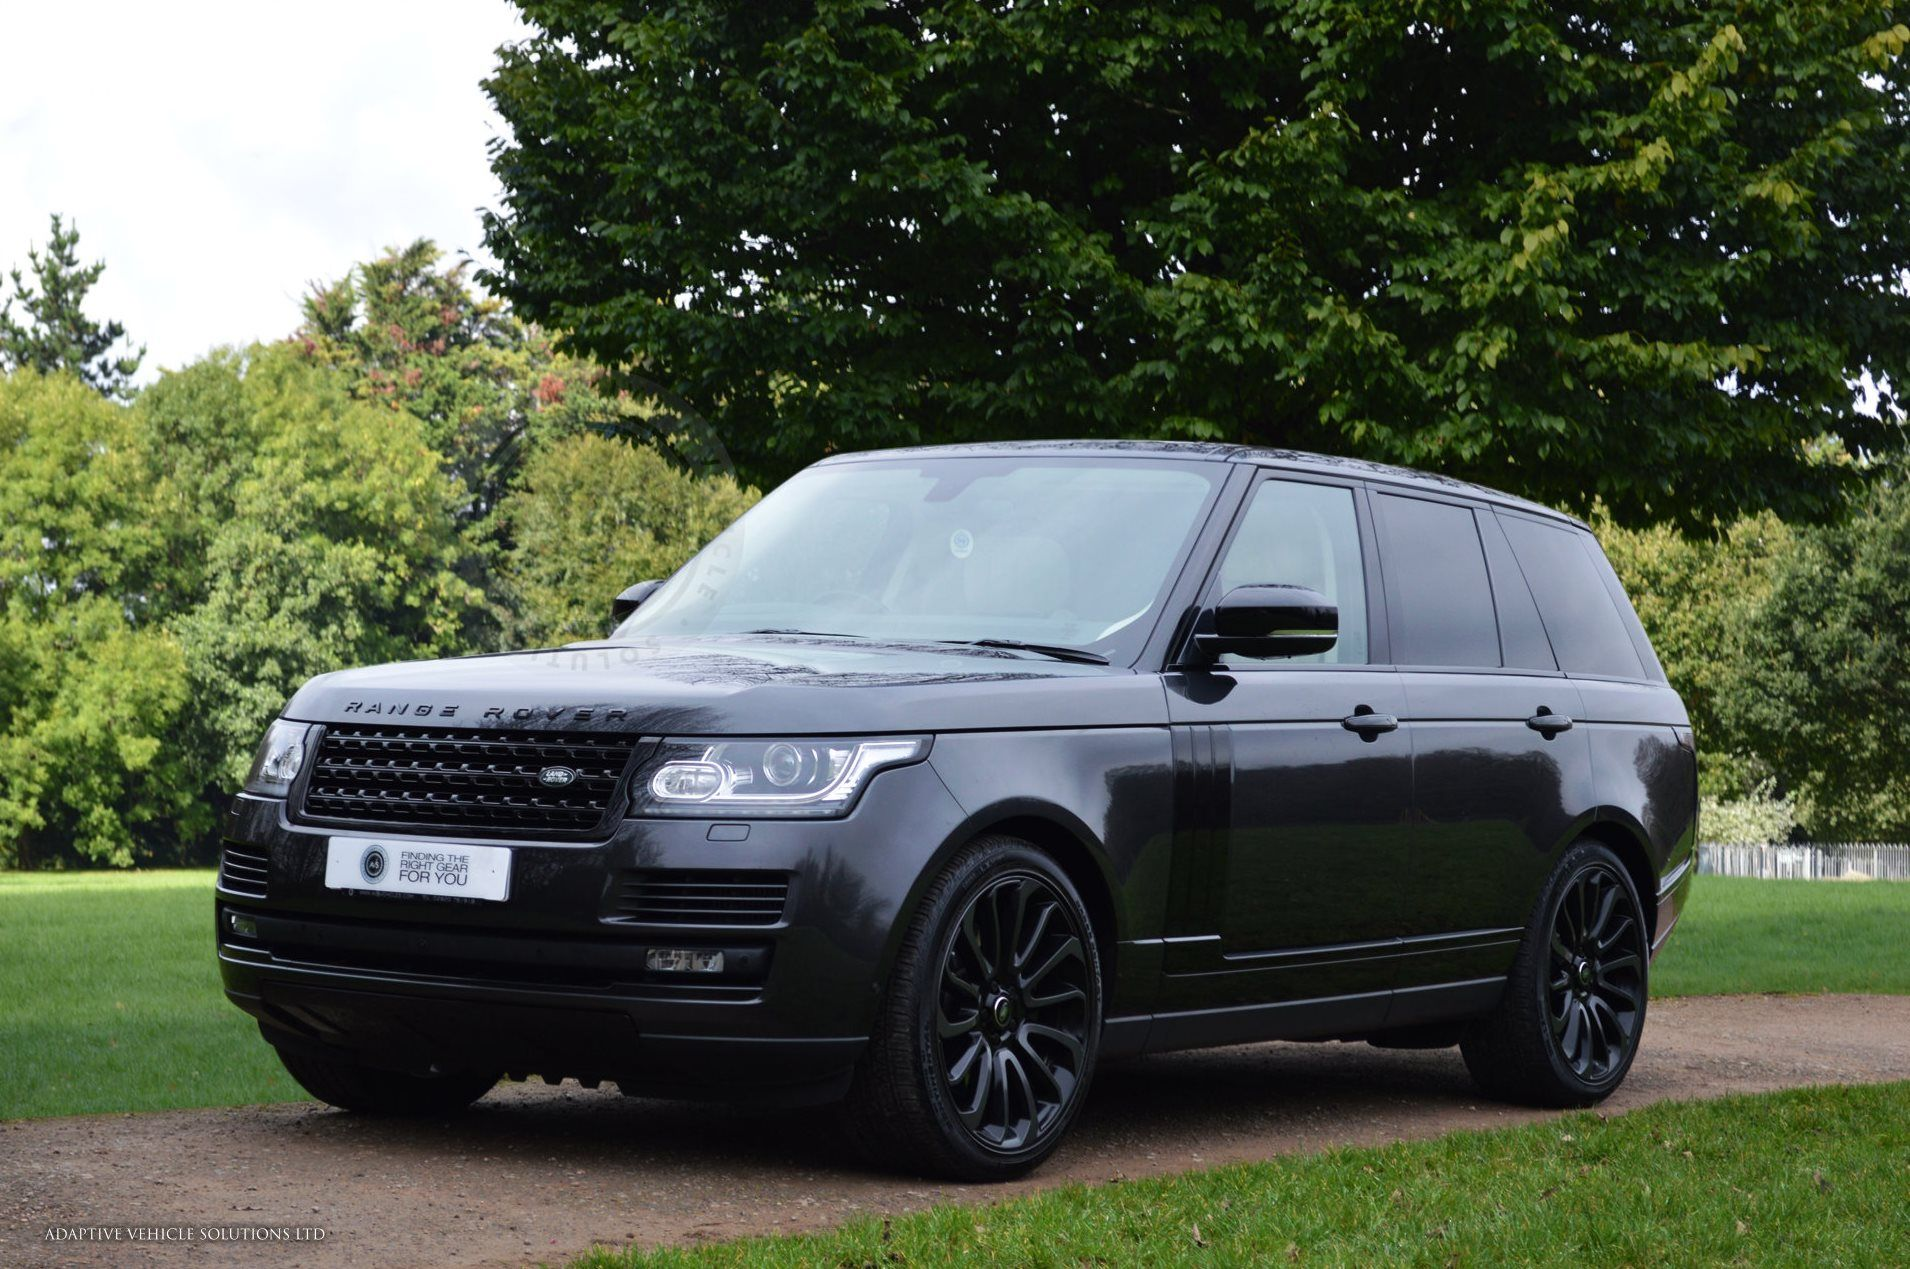 range rover autobiography petrol range rover range rover. Black Bedroom Furniture Sets. Home Design Ideas